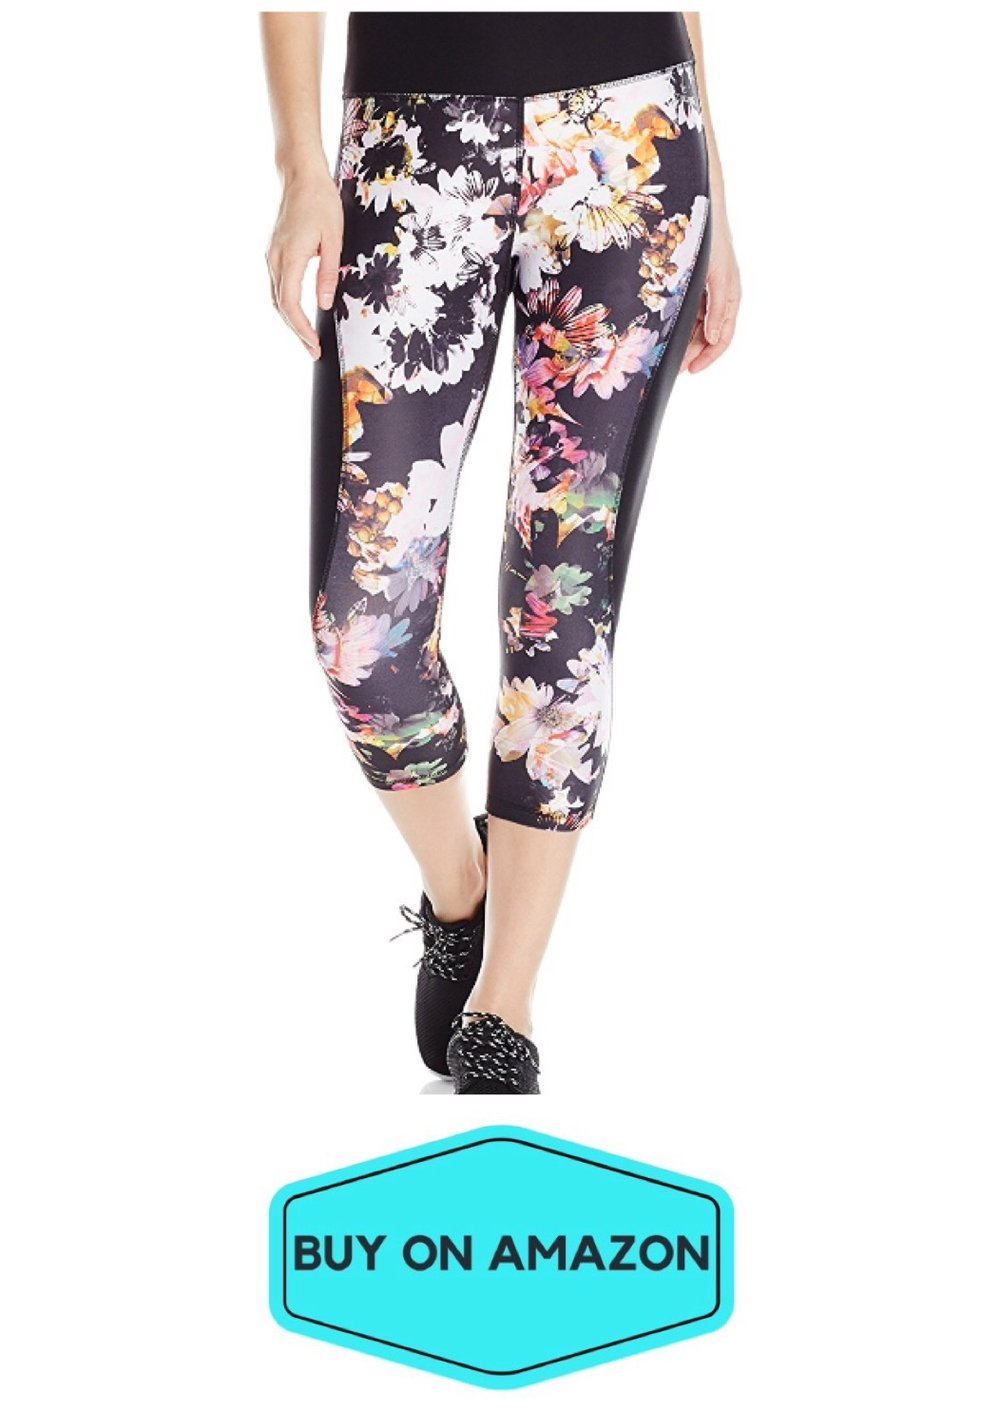 Spalding Night Flower Print Capri Leggings